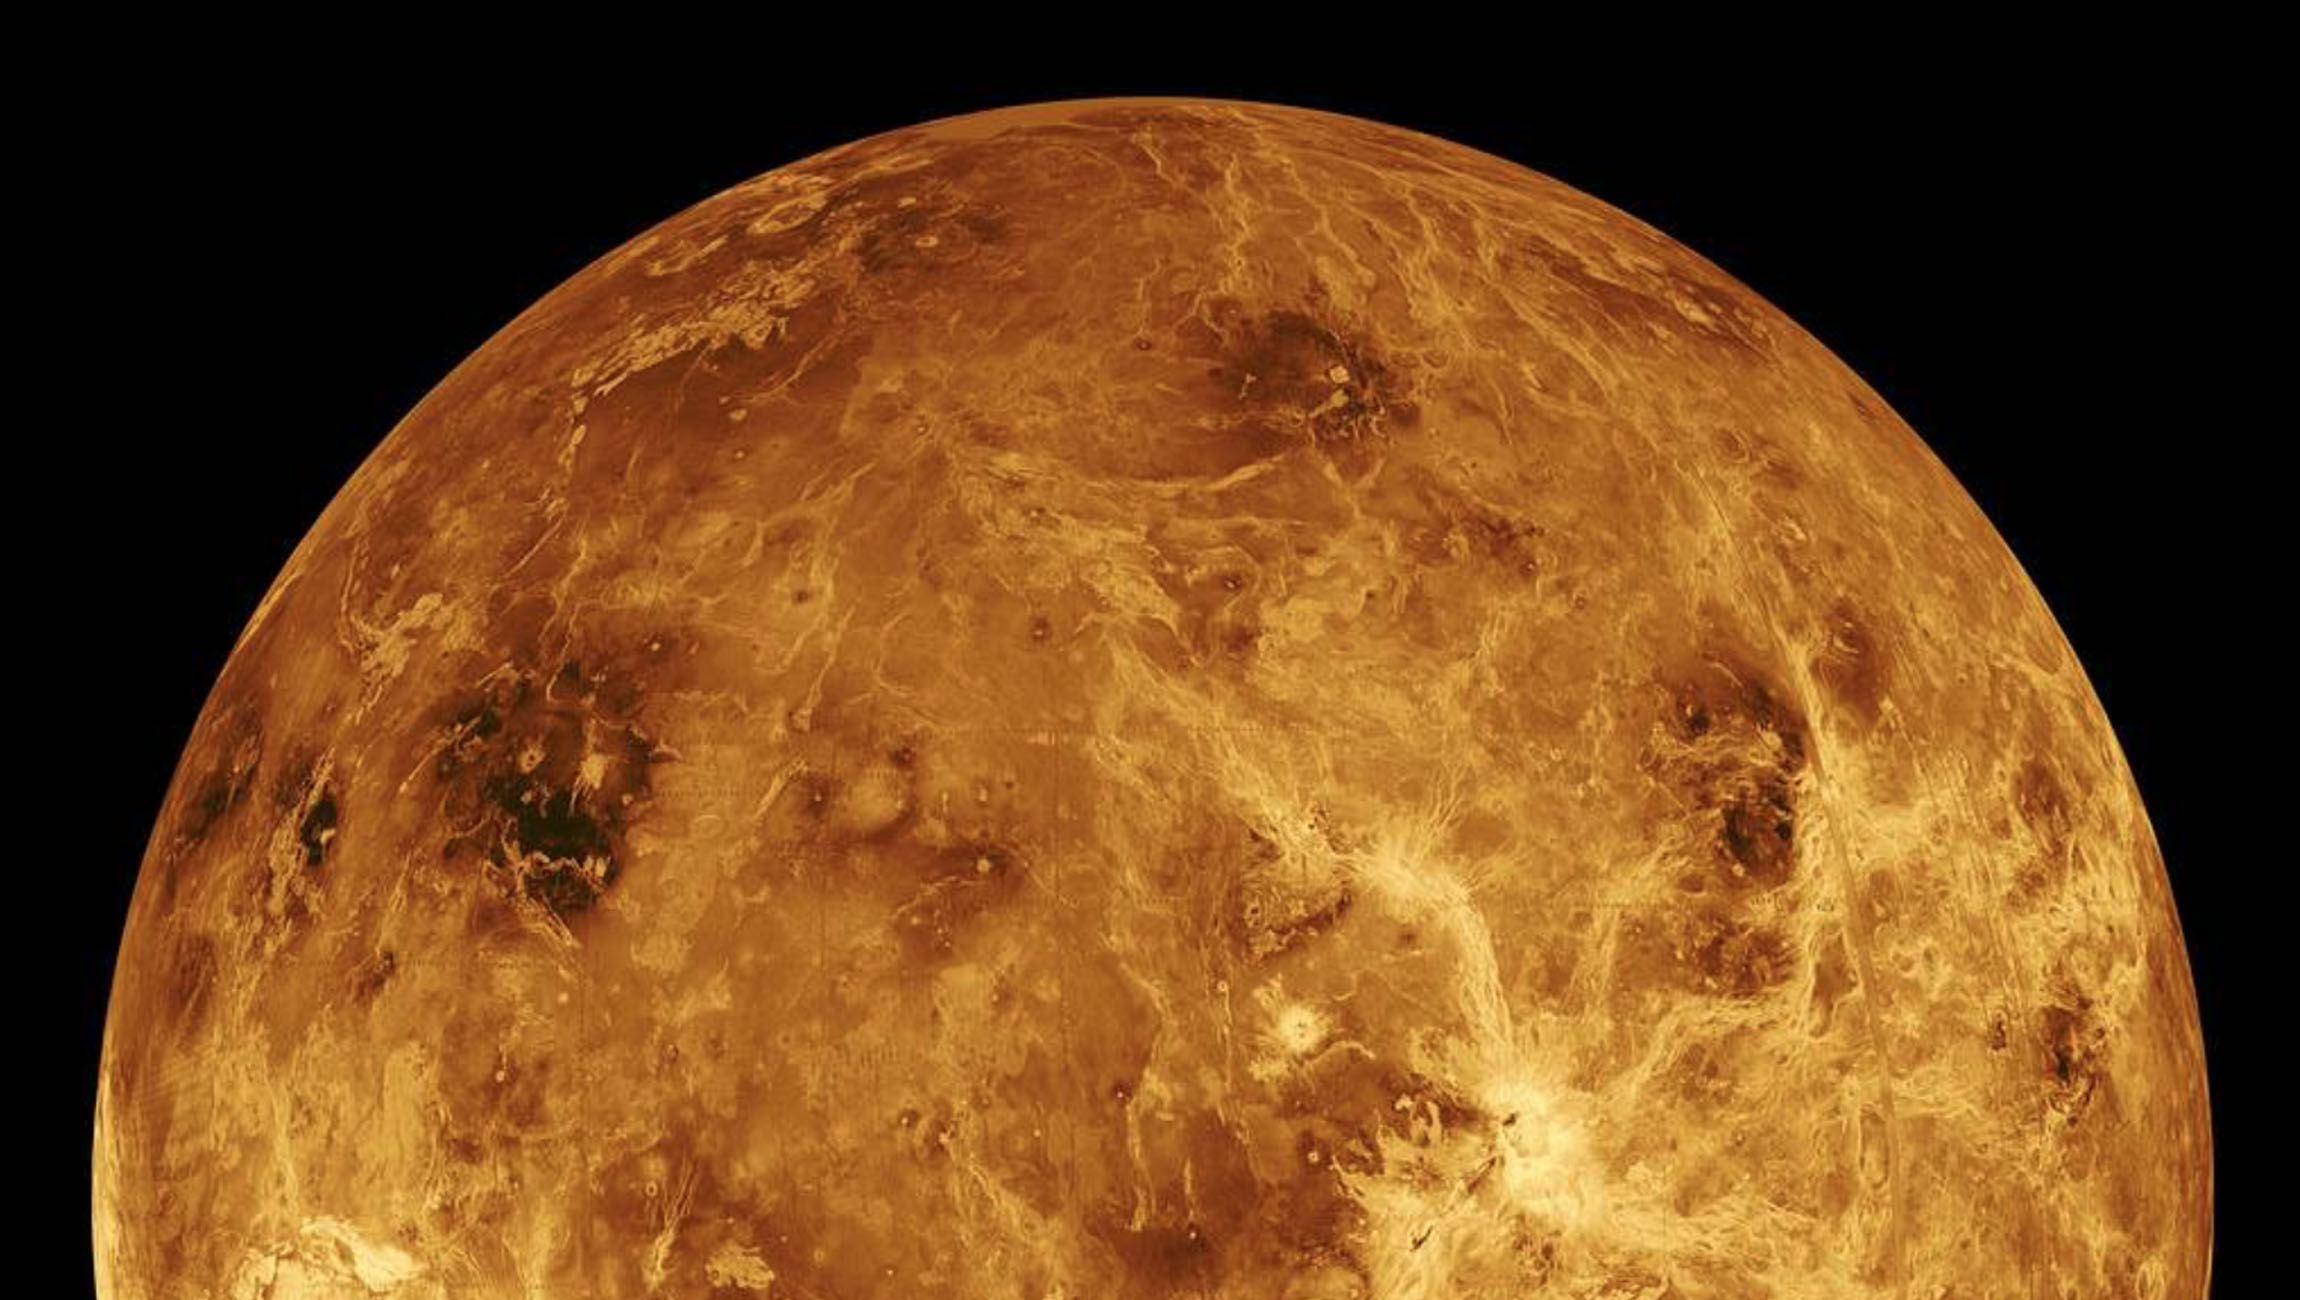 Venus was once a raging fireball of lava and chaos